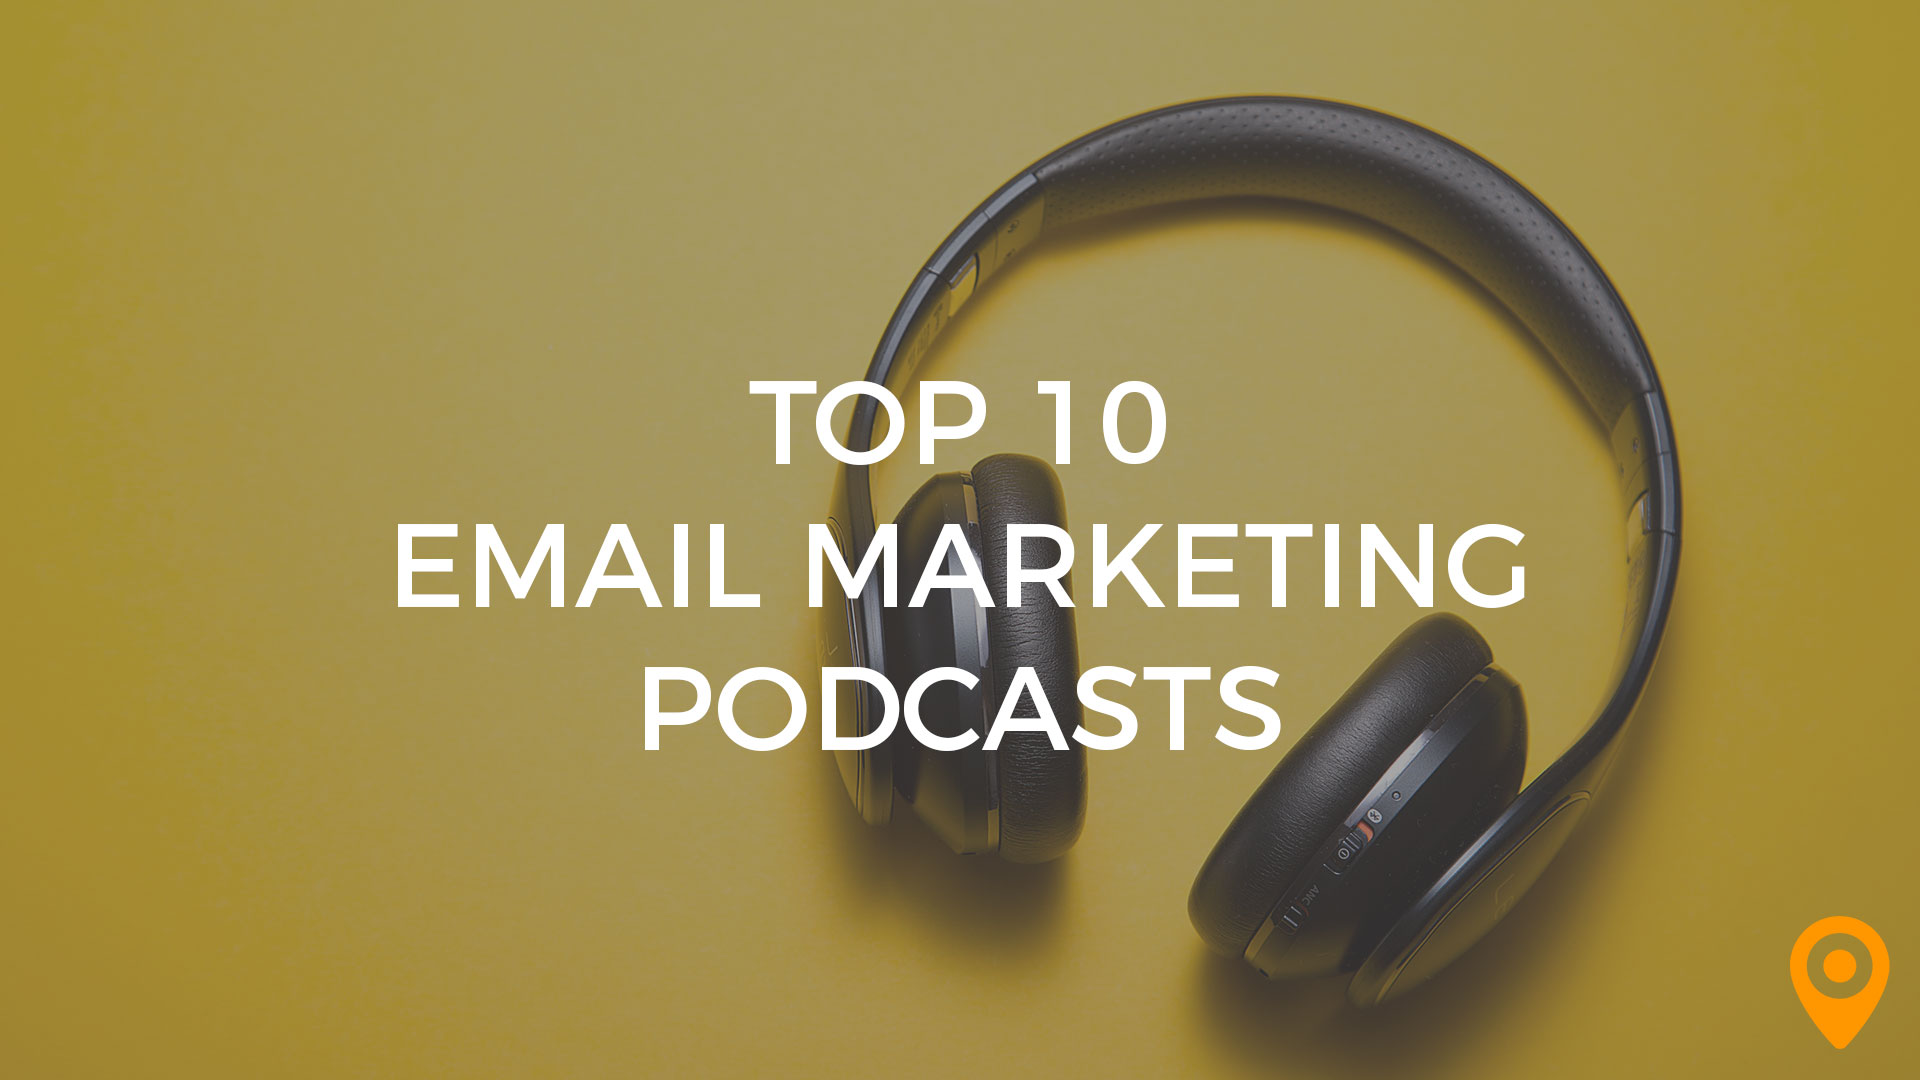 Top 10 Email Marketing Podcasts